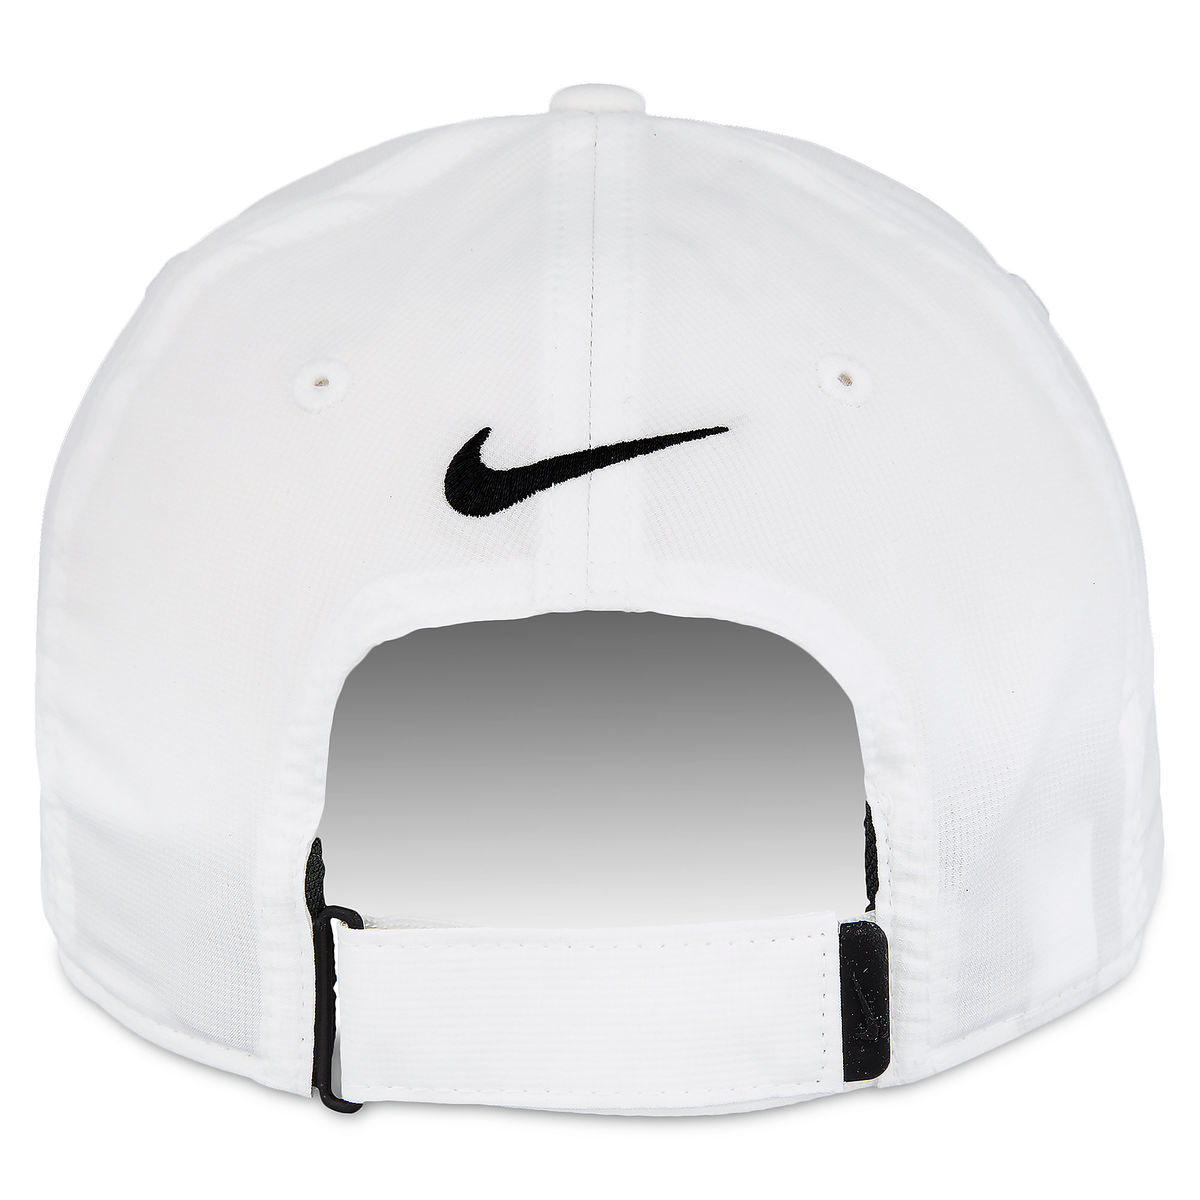 Mickey Mouse Silhouette Baseball Hat by Nike - White  8cd855288e7